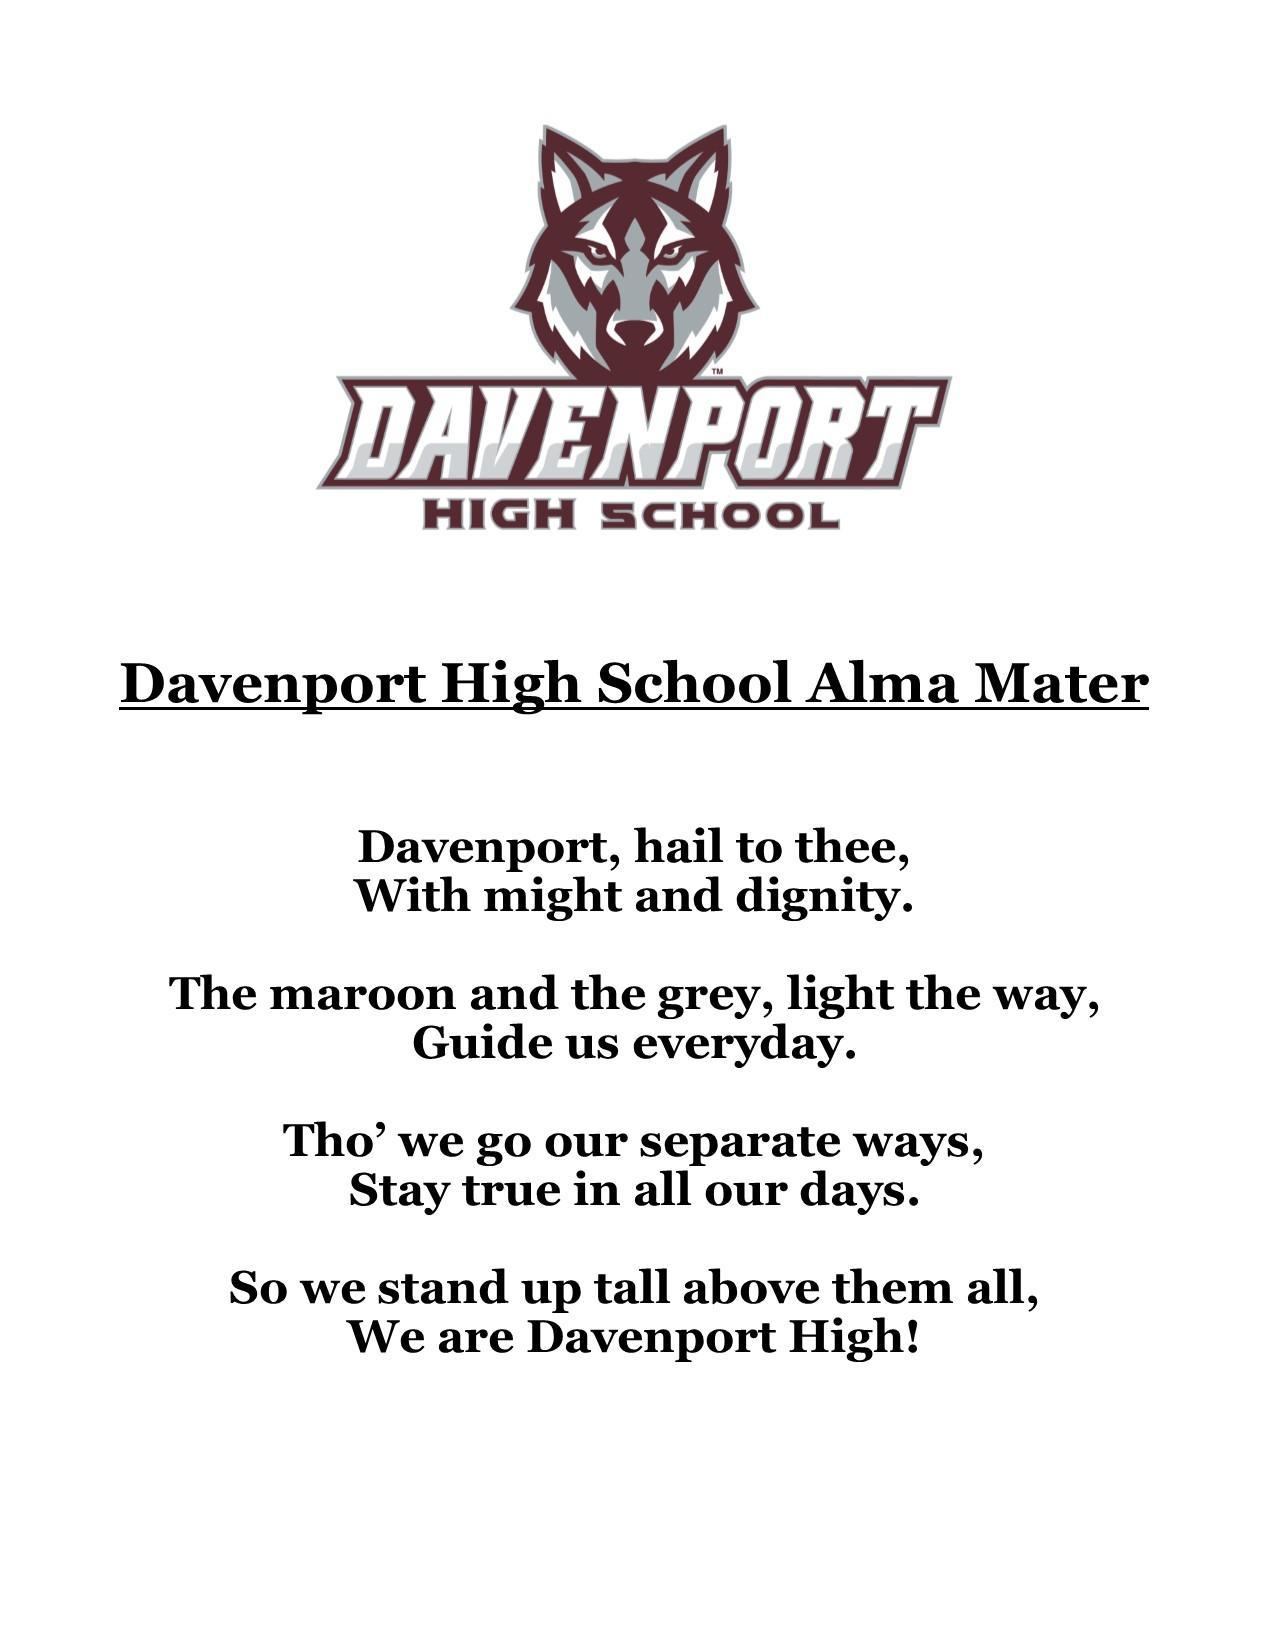 Alma Mater/Fight Song